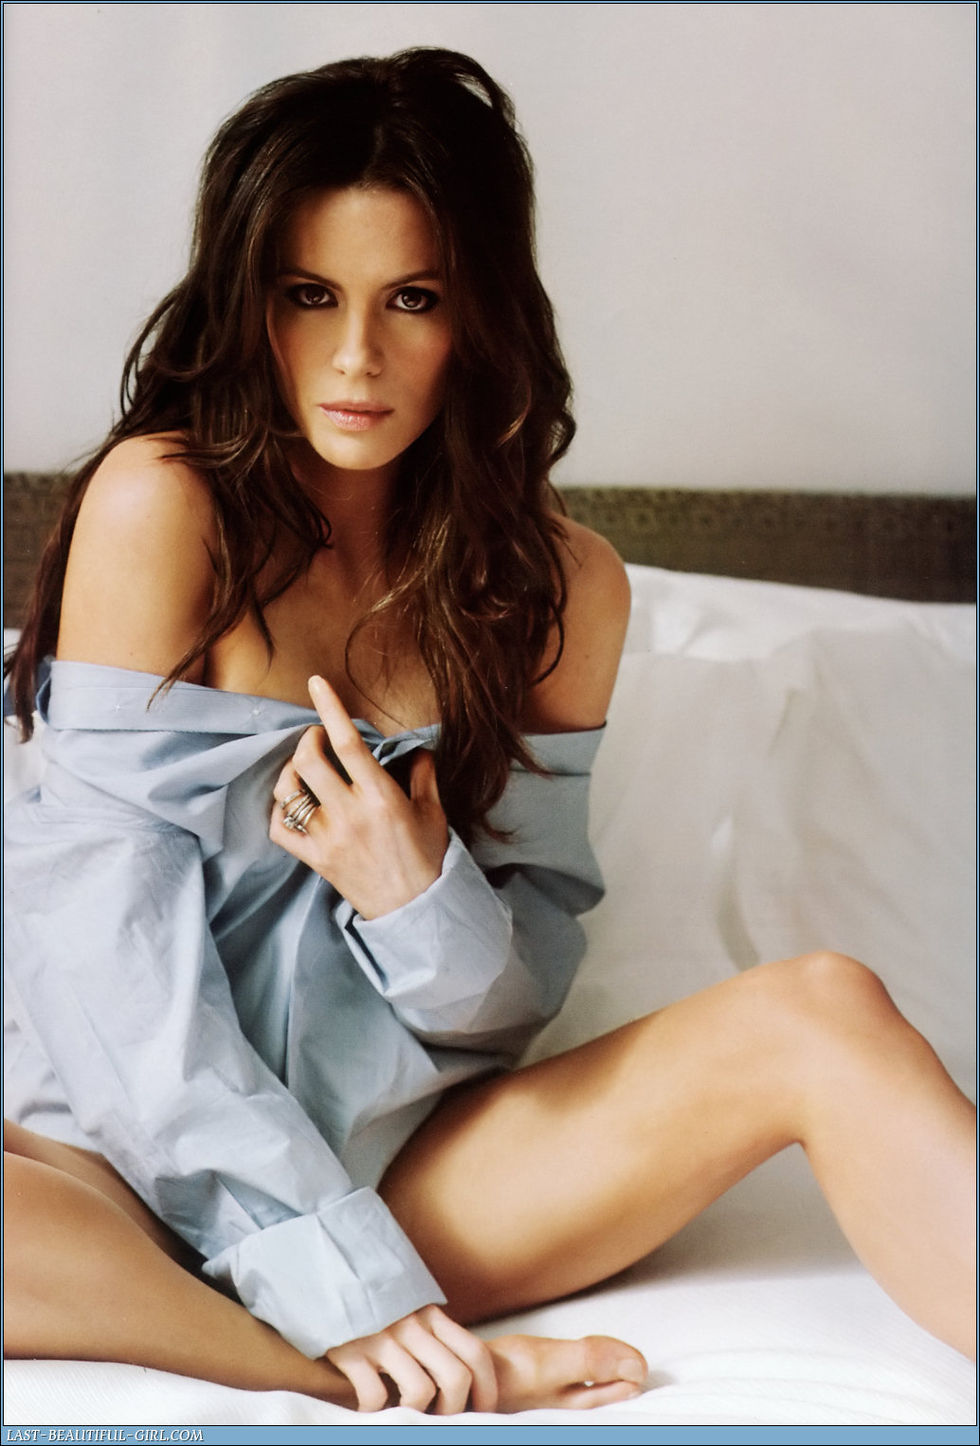 Kate beckinsale sexy pose